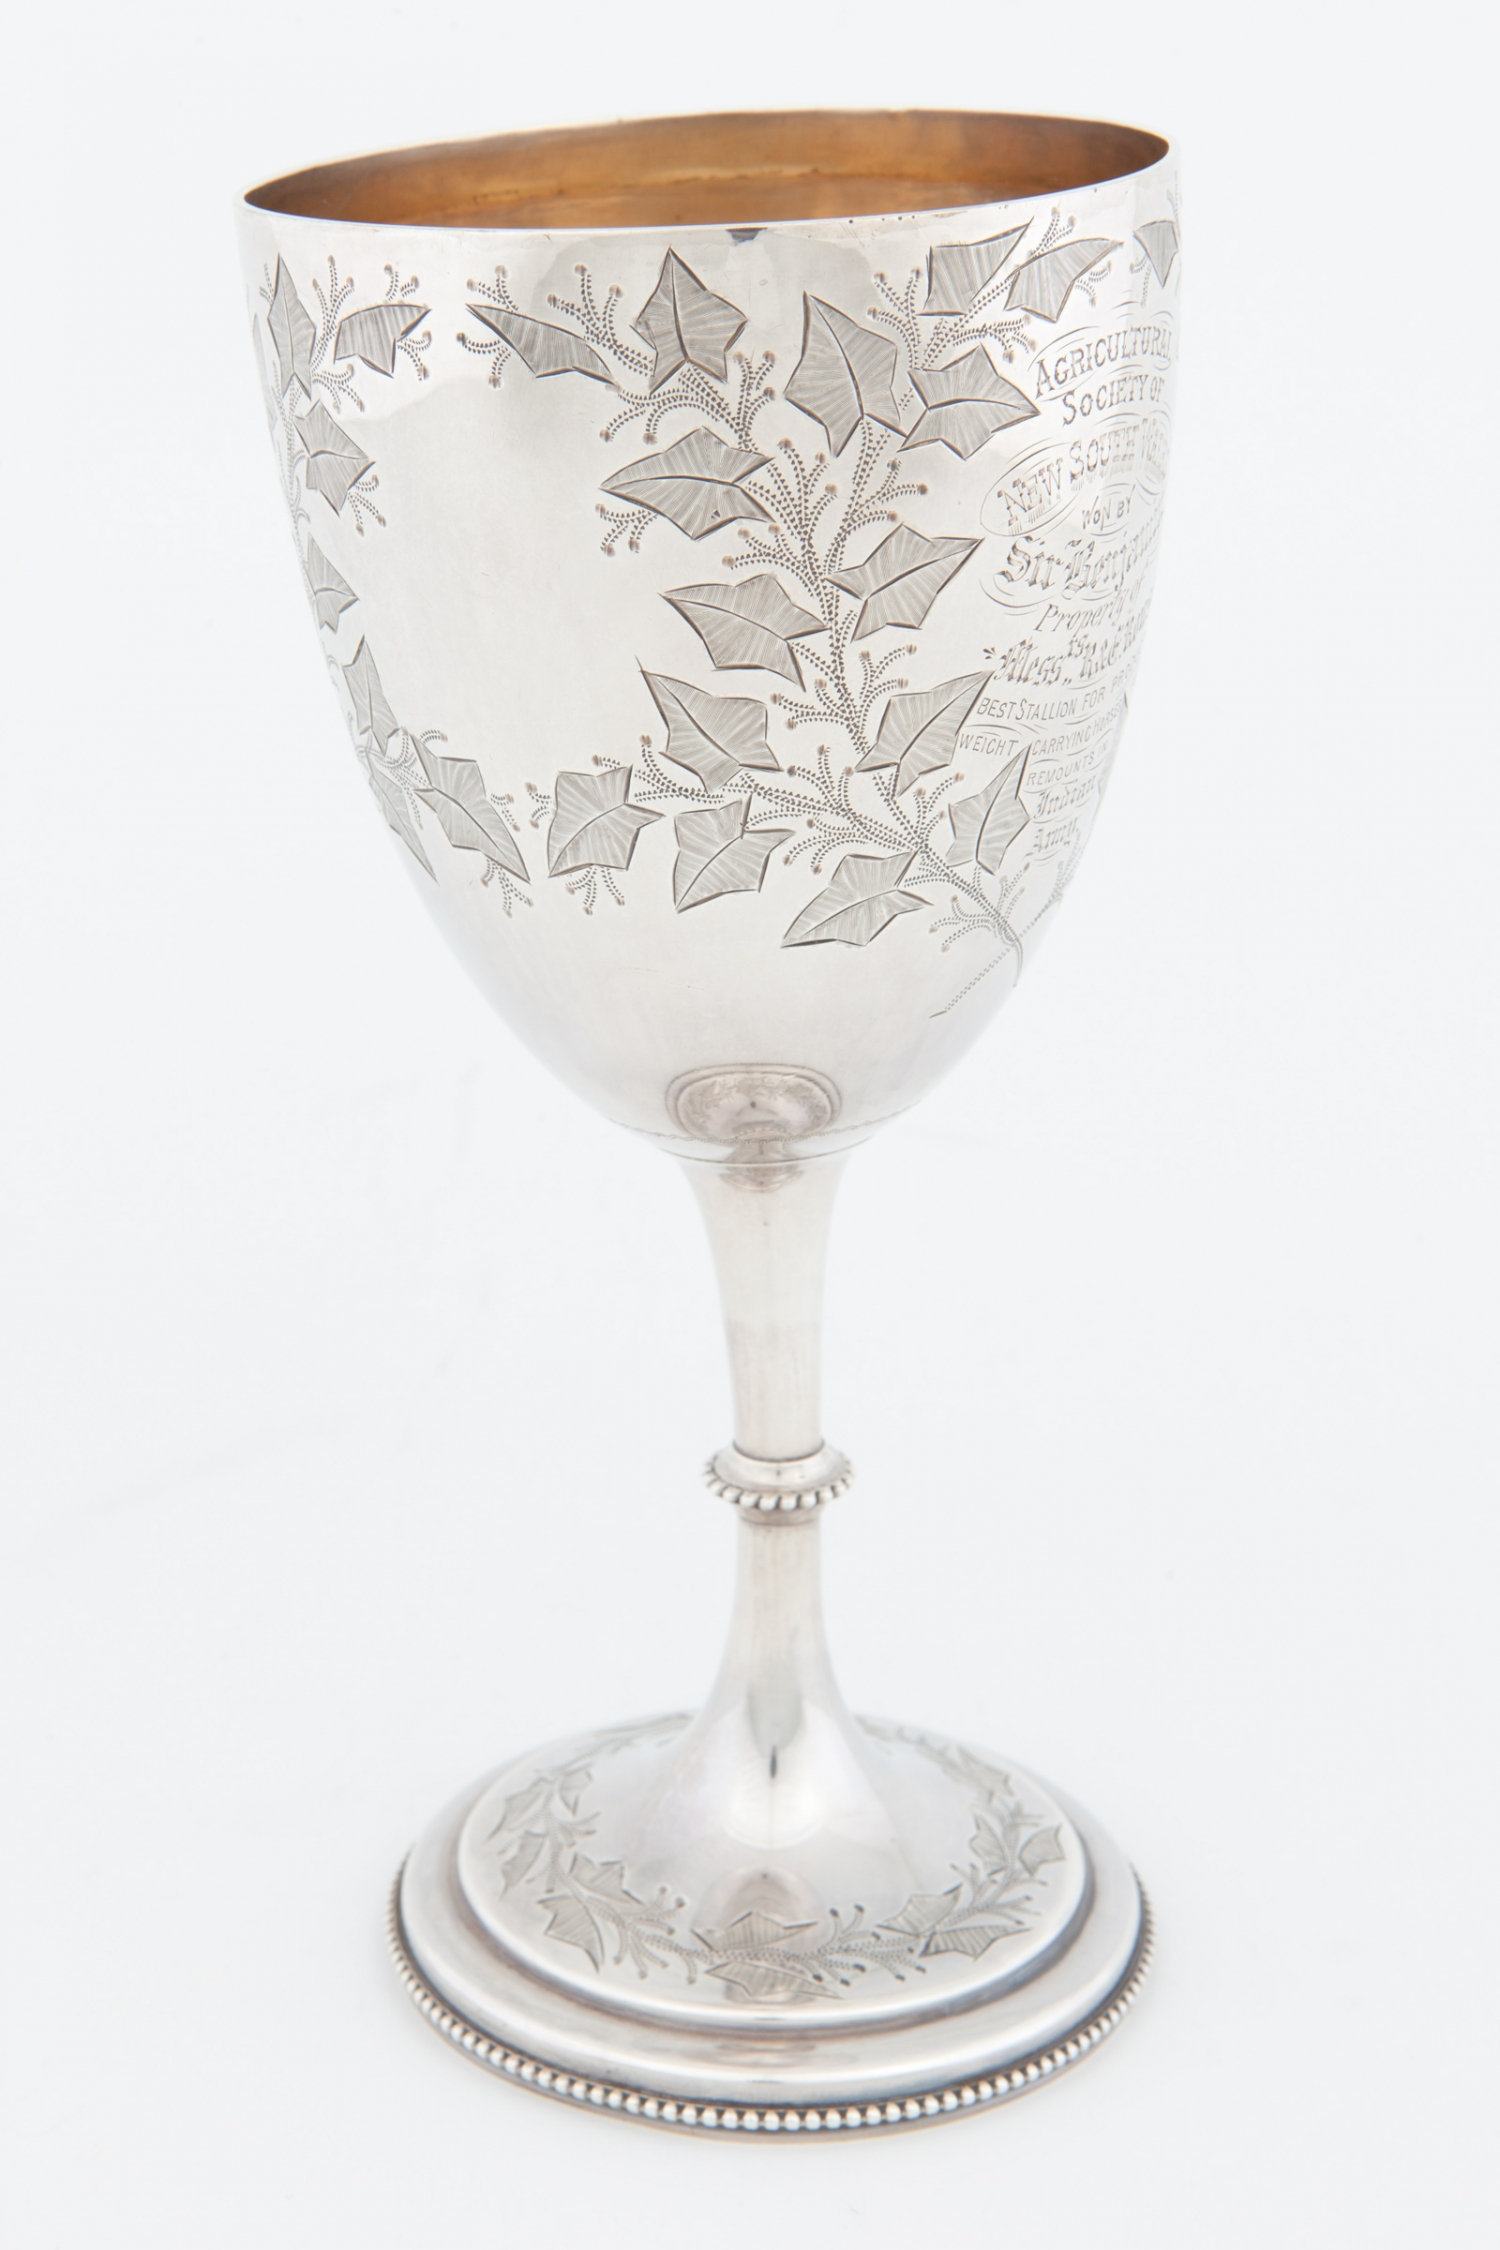 Sterling silver trophy cup awarded to Edwin and Richard Rouse for horse Sir Benjamin, made 1881